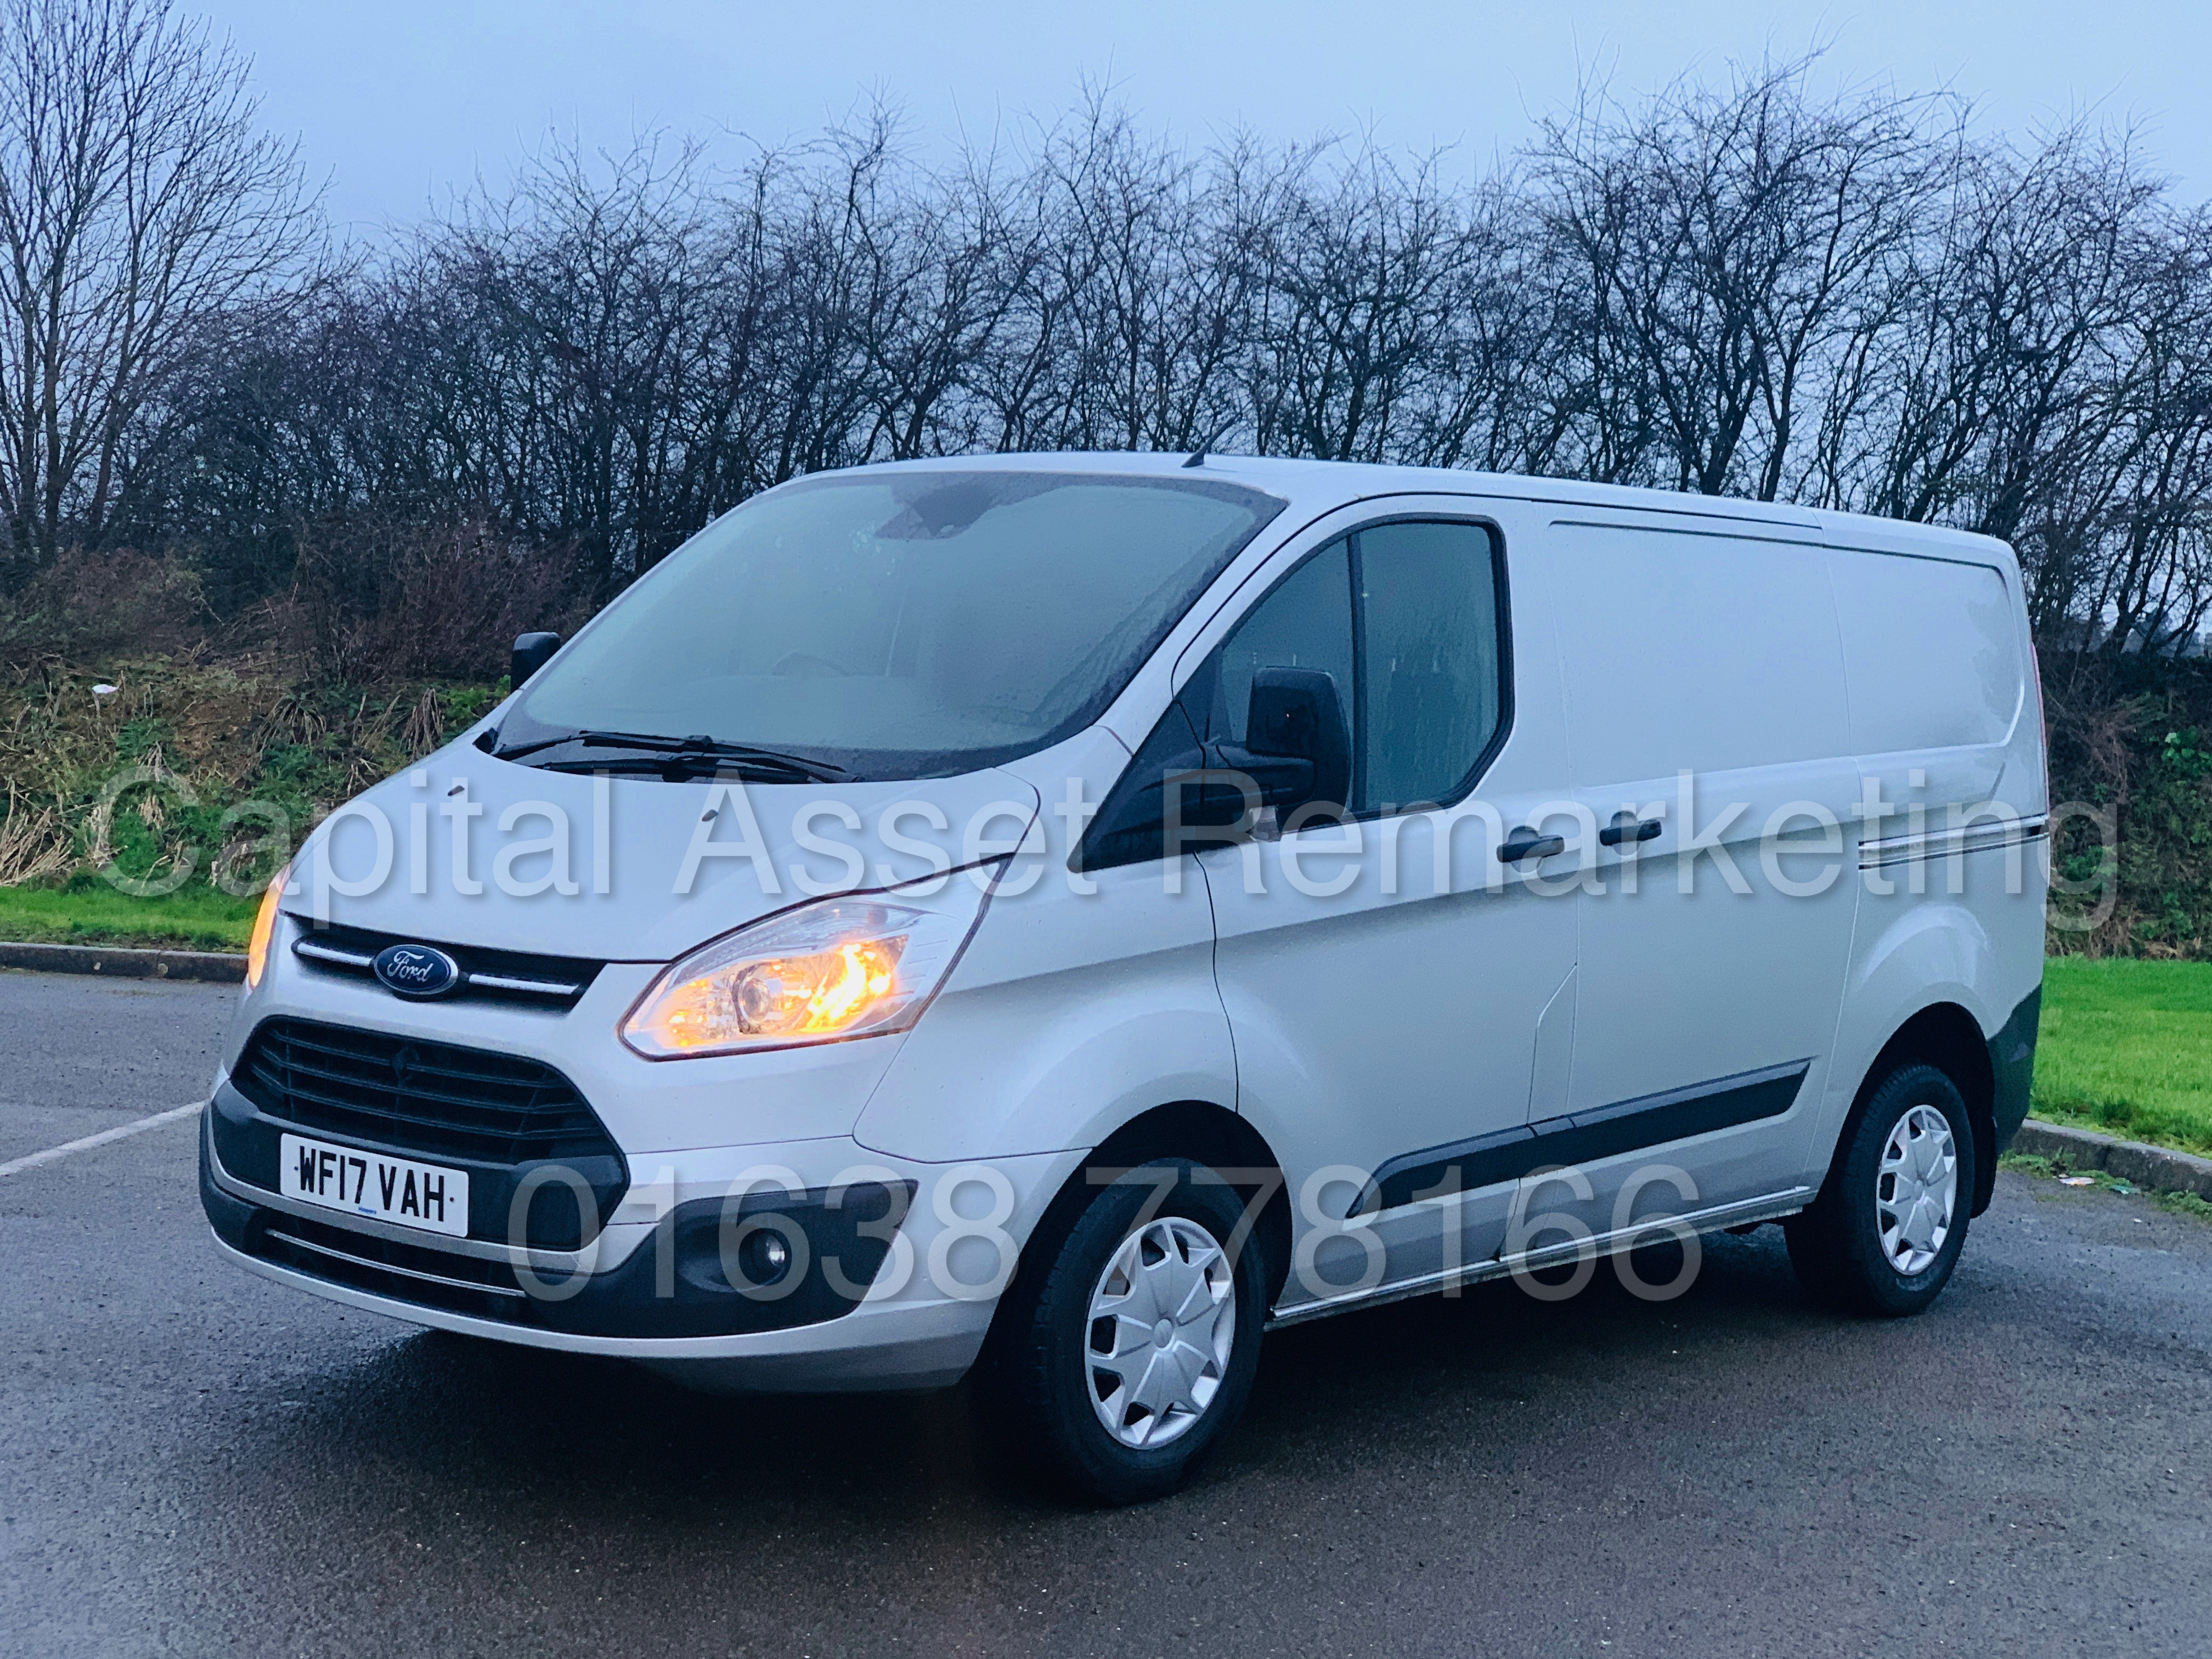 (On Sale) FORD TRANSIT *TREND* 290 SWB (2017 - EURO 6 / AD-BLUE) '2.0 TDCI - 130 BHP - 6 SPEED' - Image 6 of 41